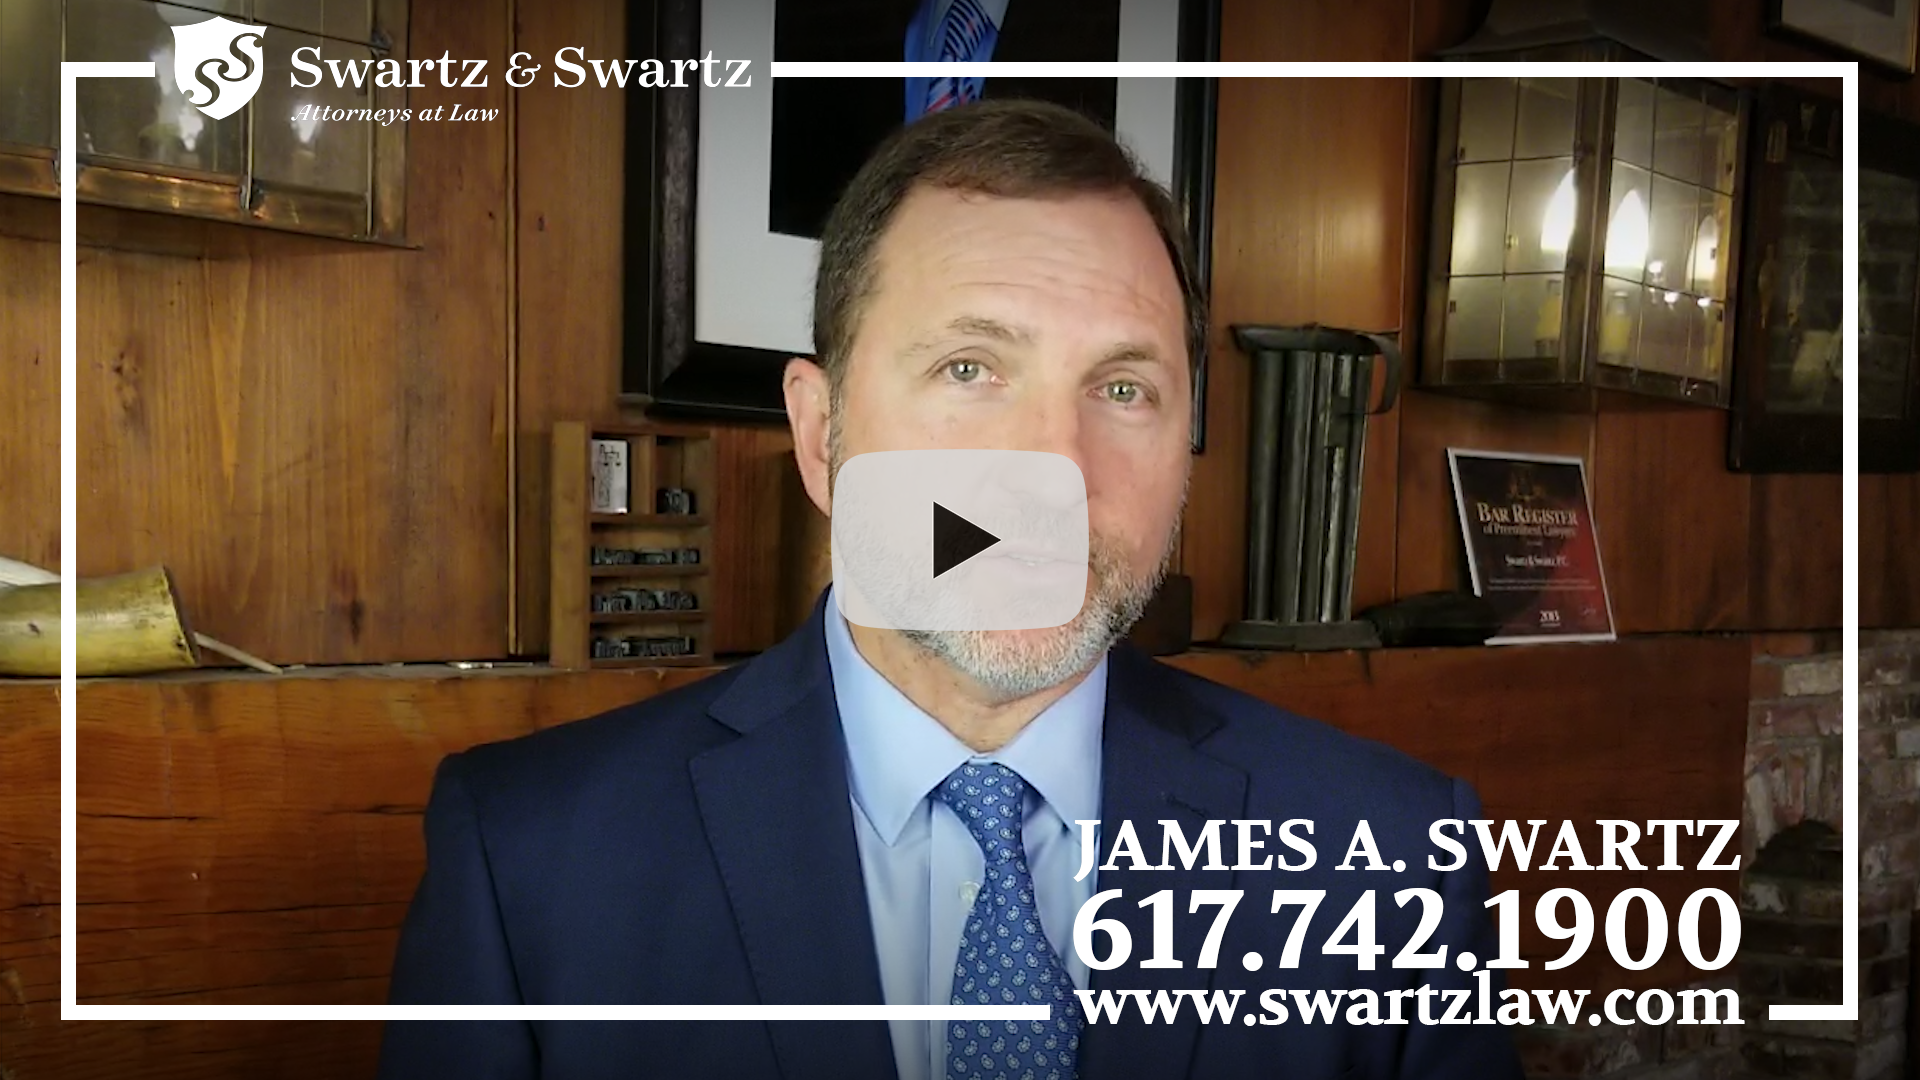 James Swartz Discusses the Recent Ban on Flavored Vaping Products in Massachusetts